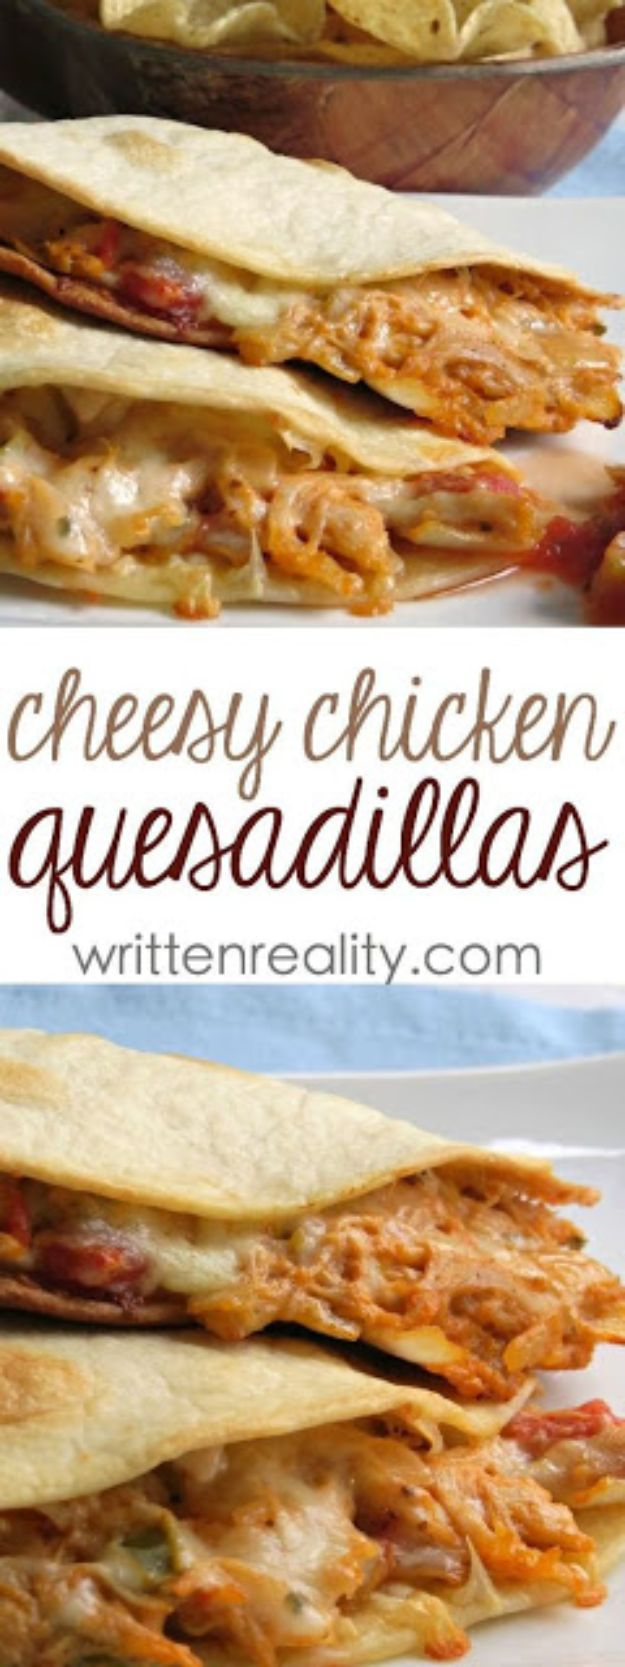 Best Mexican Food Recipes - Cheesy Chicken Quesadillas - Authentic Mexican Foods and Recipe Ideas for Casseroles, Quesadillas, Tacos, Appetizers, Tamales, Enchiladas, Crockpot, Chicken, Beef and Healthy Foods - Desserts and Dessert Ideas Like Churros , Flan amd Sopapillas #recipes #mexicanfood #mexicanrecipes #recipeideas #mexicandishes http://diyjoy.com/mexican-food-recipes